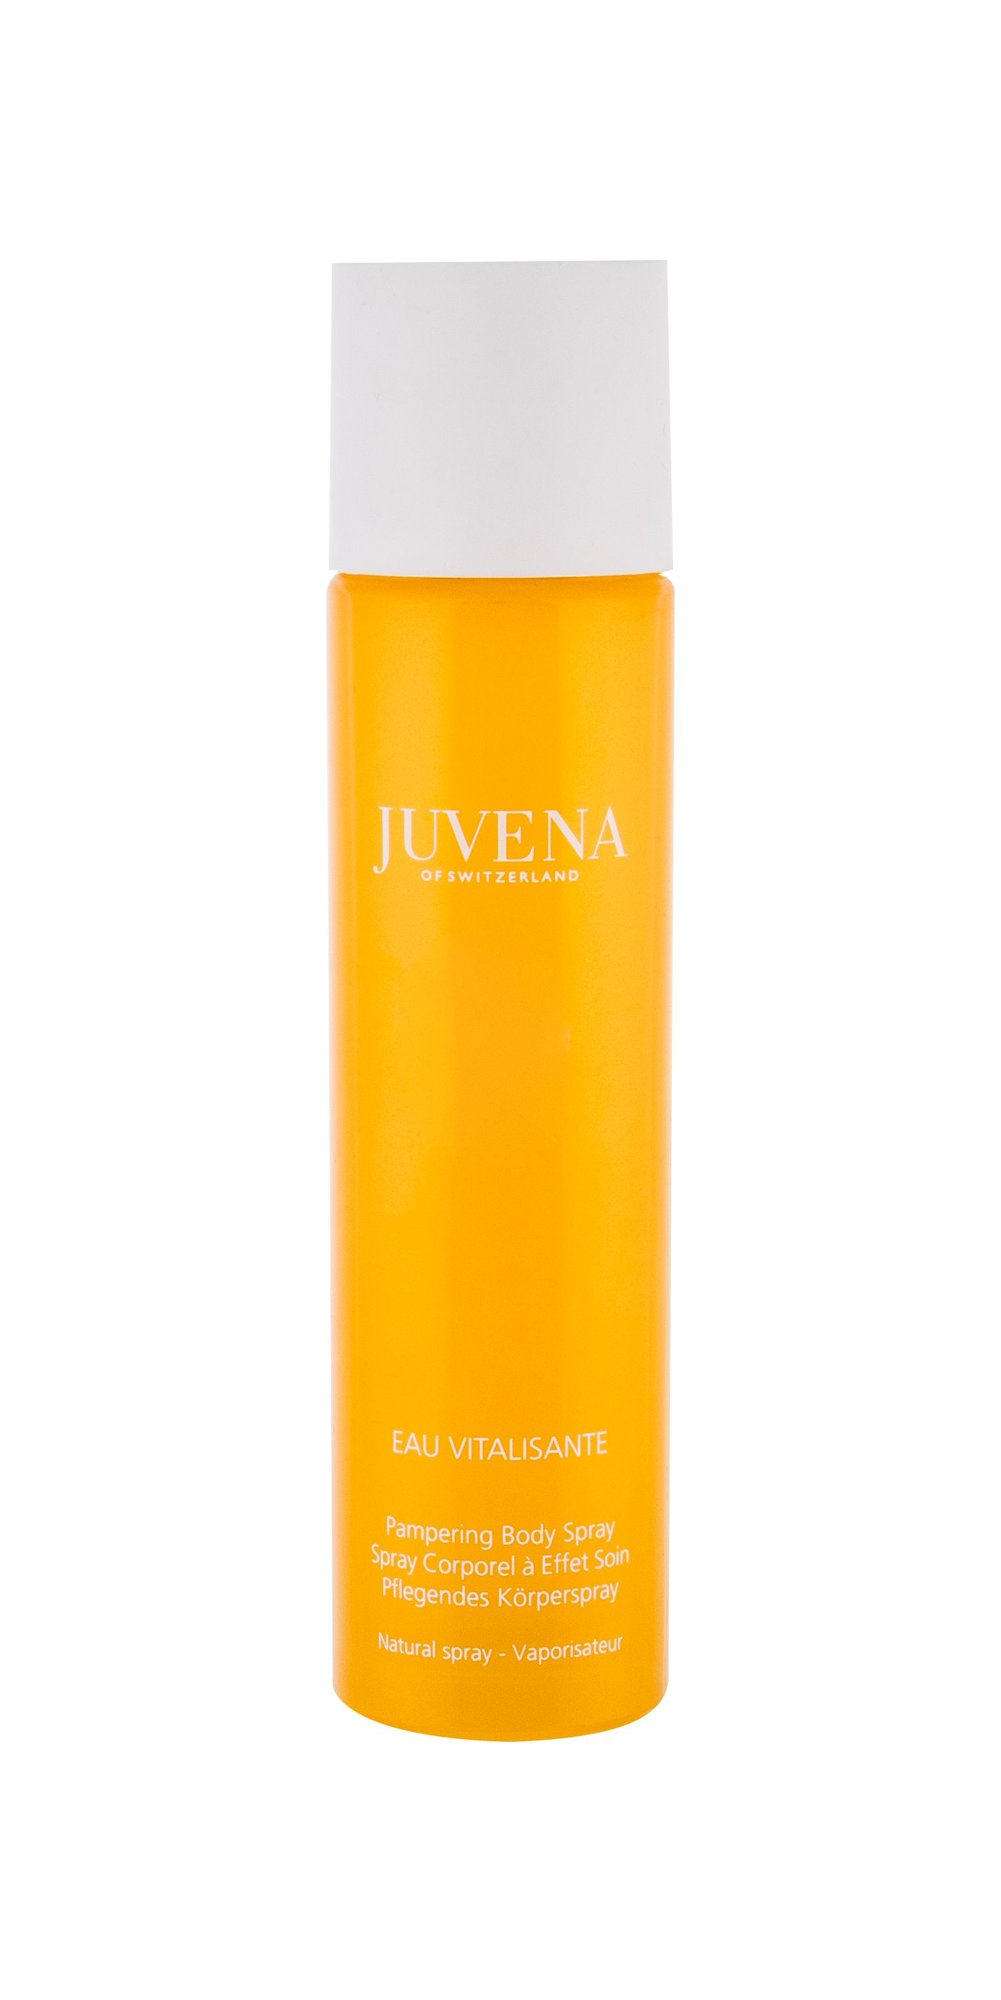 Juvena Eau Vitalisante Body Spray 100ml